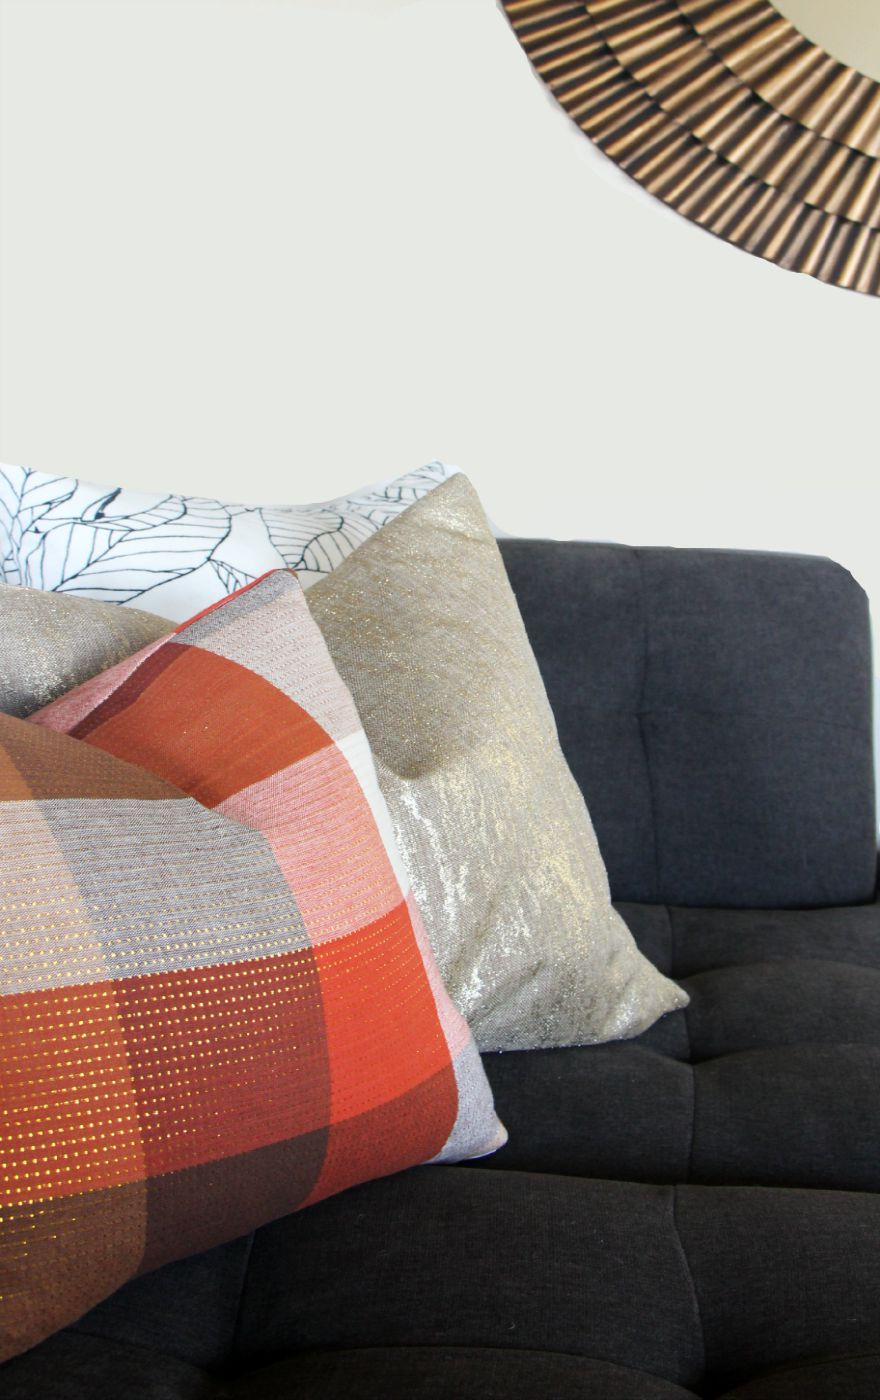 Diy Fall Pillows For Under 5 This Is Our Bliss